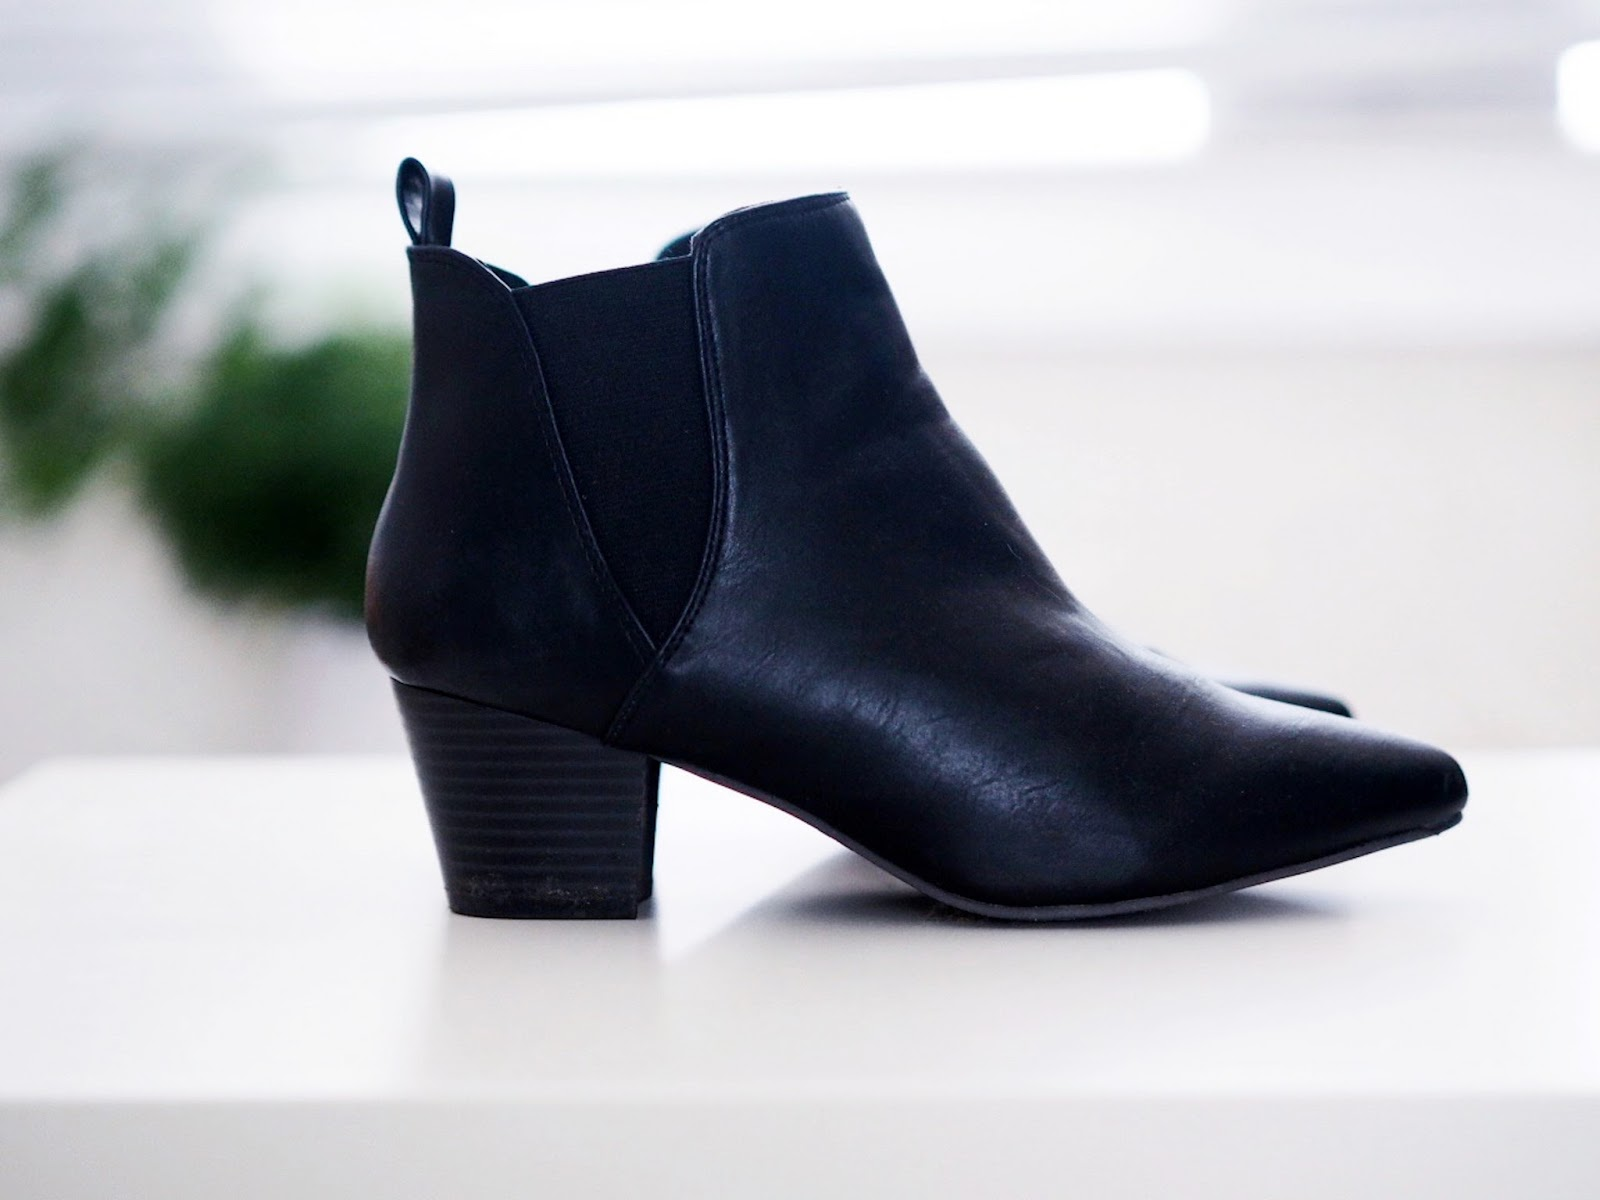 boots similar to acne jenson